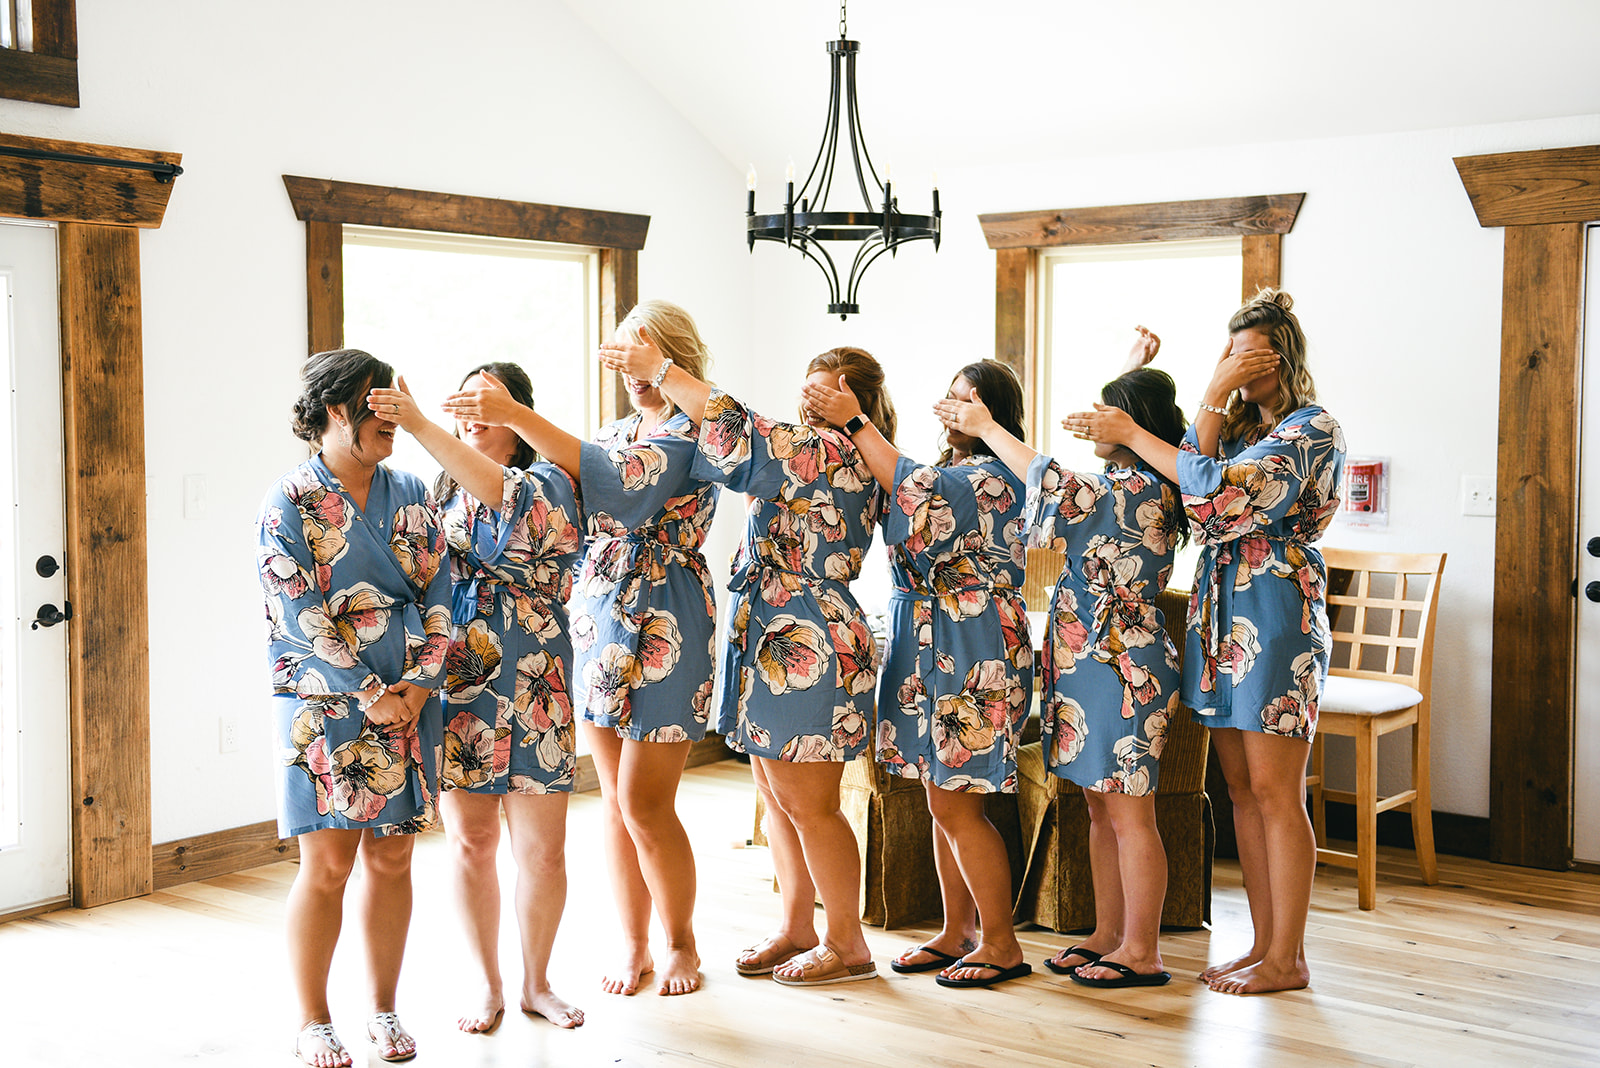 Bridal party photo ideas: Elegant Cason Cove Wedding featured on Nashville Bride Guide